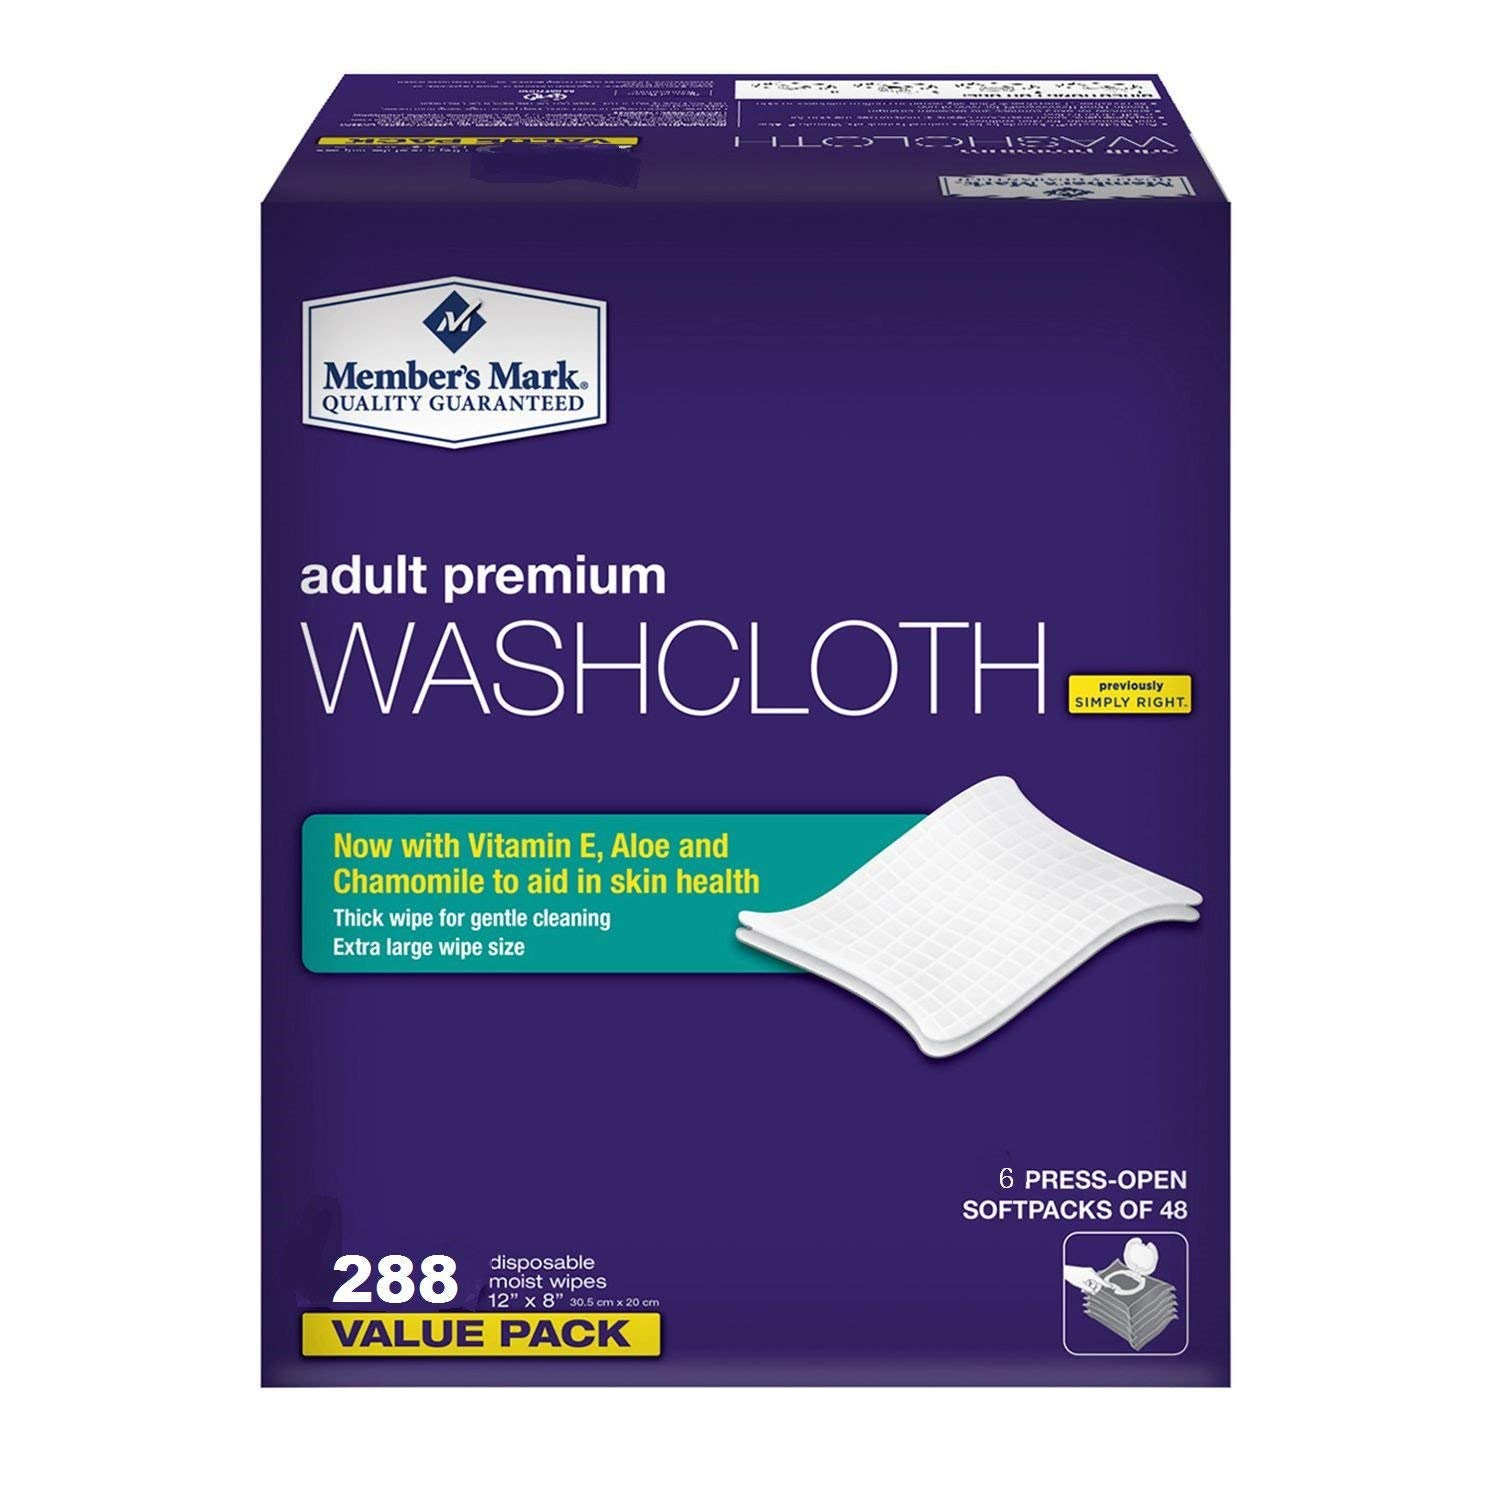 Member's Mark Adult Premium Disposable Washcloth Value Pack 288 Count 1, Blue (3 Pack)